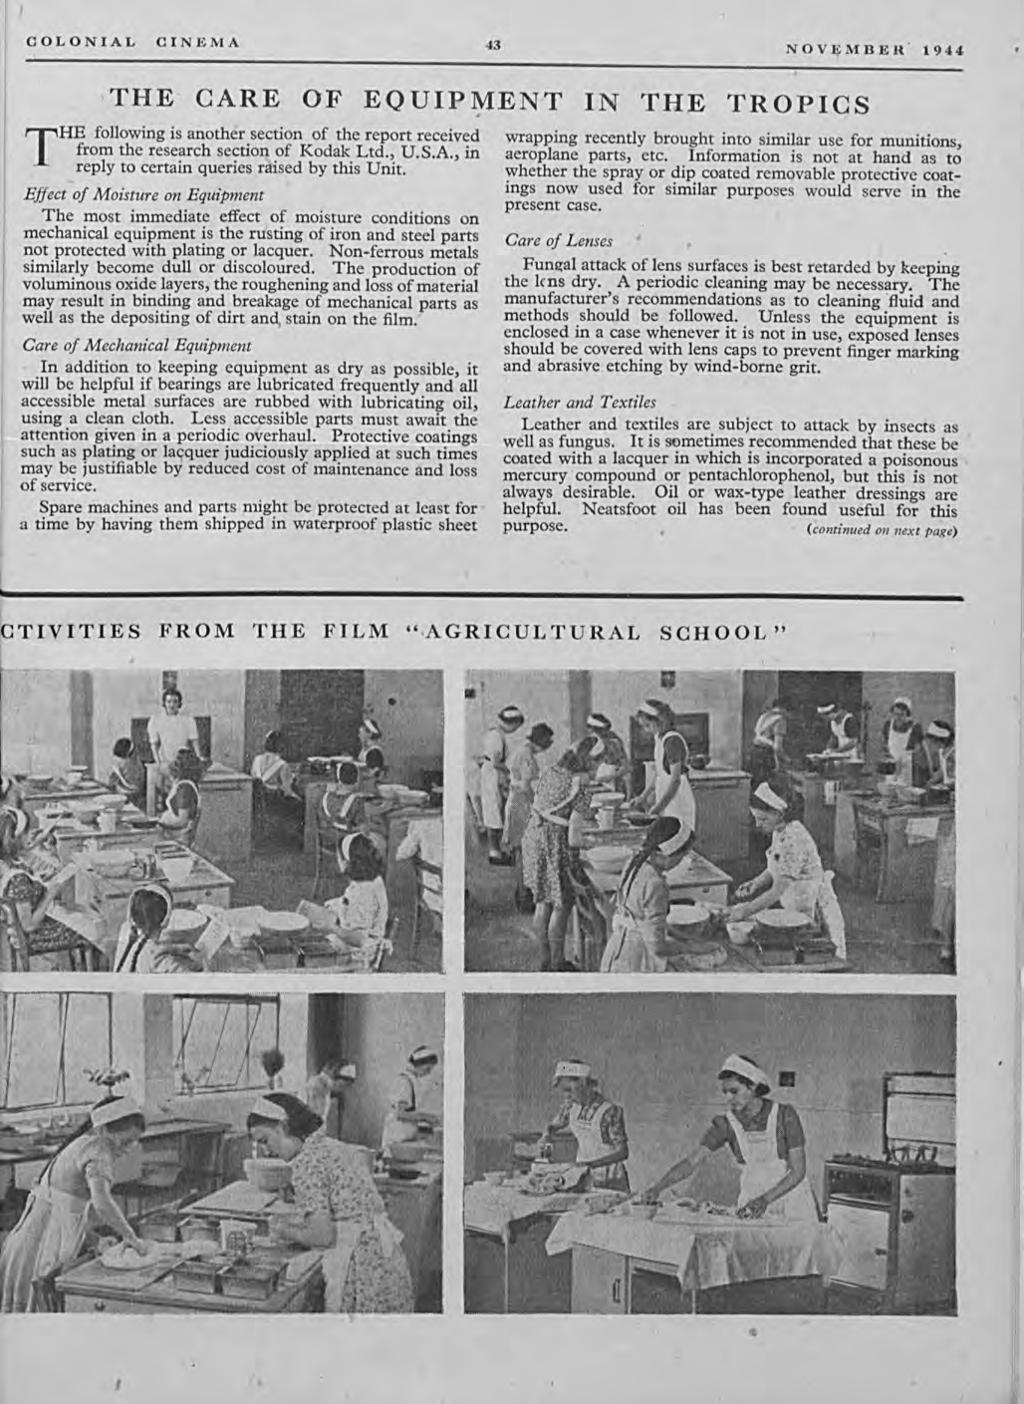 COLONIAL CINEMA 43 NOVEMBER 1944,THE CARE OF EQUIP ENT IN THE TROPICS THE following is another section of the report received from the research section of Kodak Ltd., U.S.A., in reply to certain queries raised by this Unit.